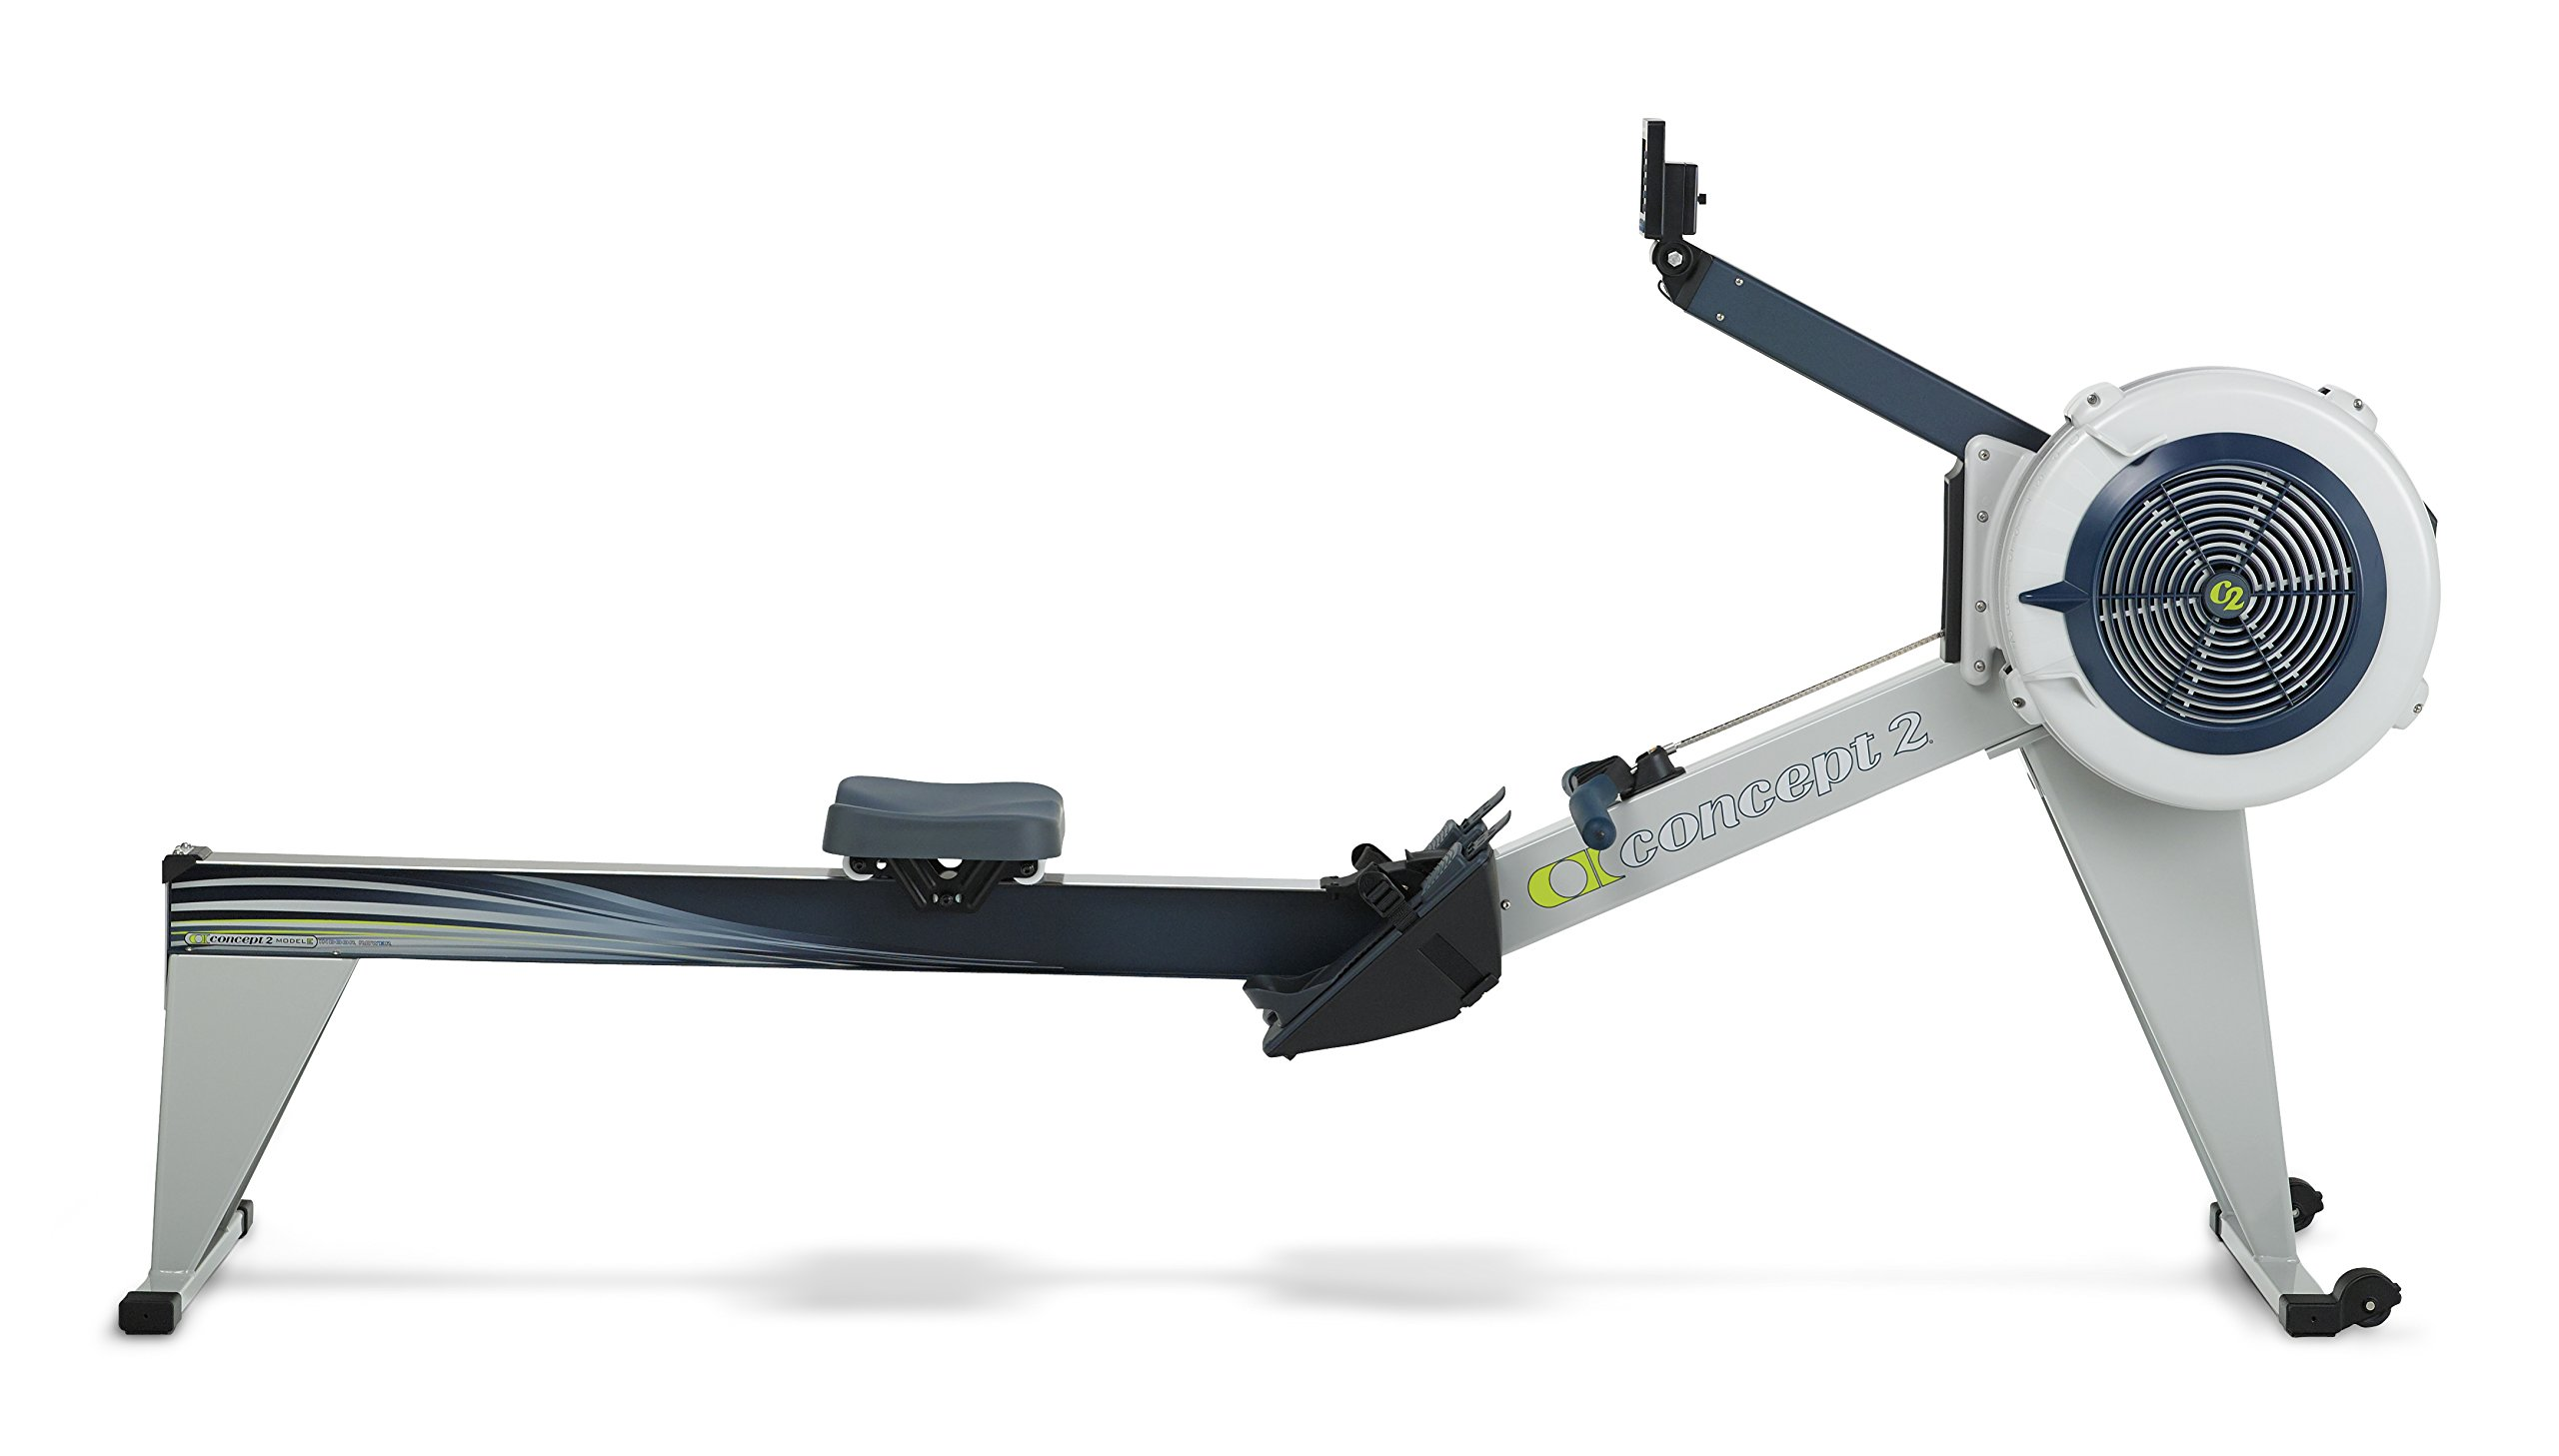 Concept2 Model E with PM5 Performance Monitor Indoor Rower Rowing Machine Gray by Concept2 (Image #2)